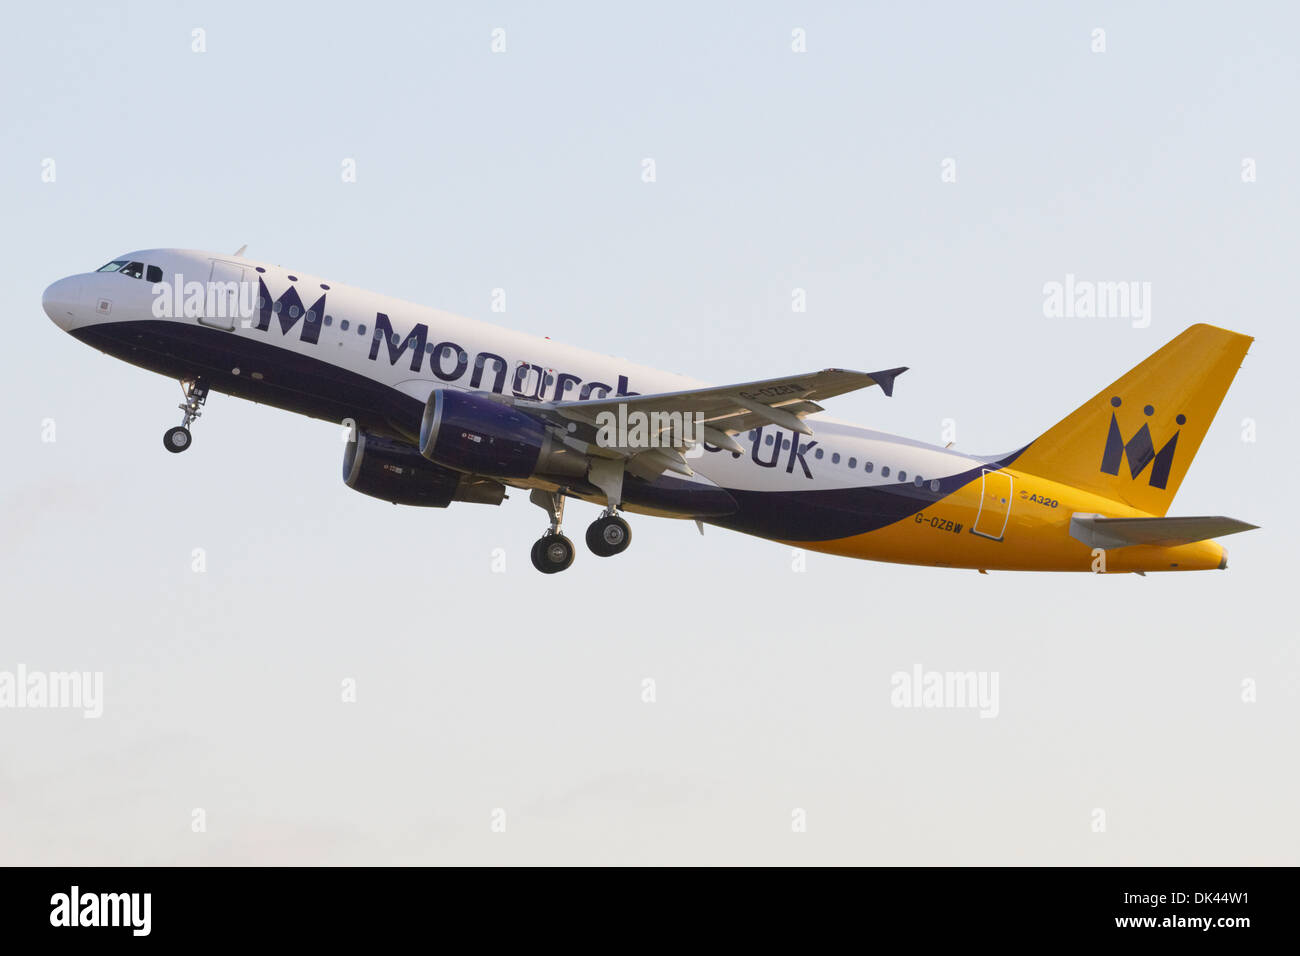 Monarch Airlines Airbus A320-200 climbing after taking off Stock Photo